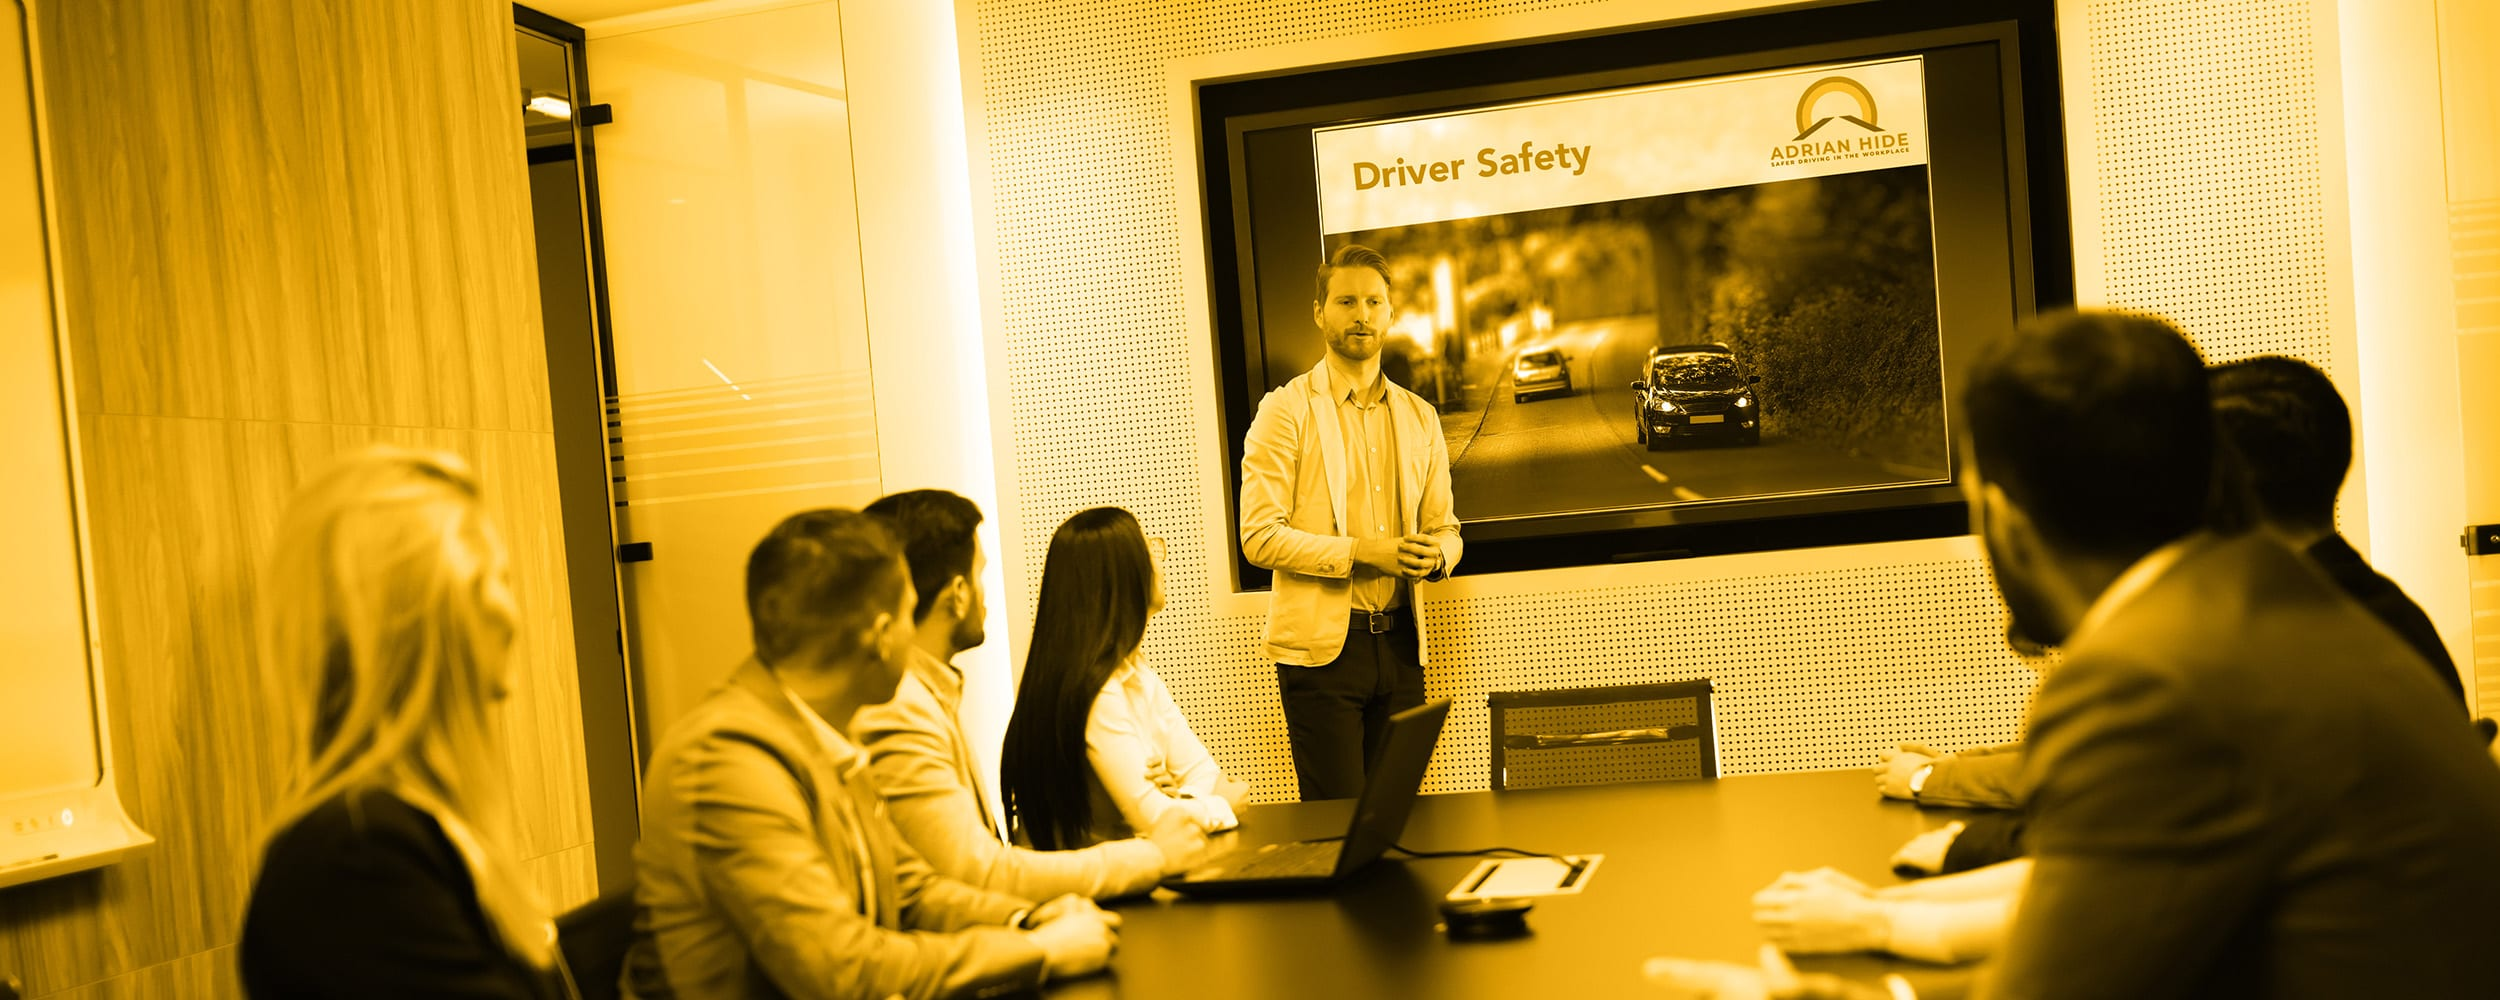 Driver Safety Workshops with Adrian Hide Consultancy - safer driving in the workplace